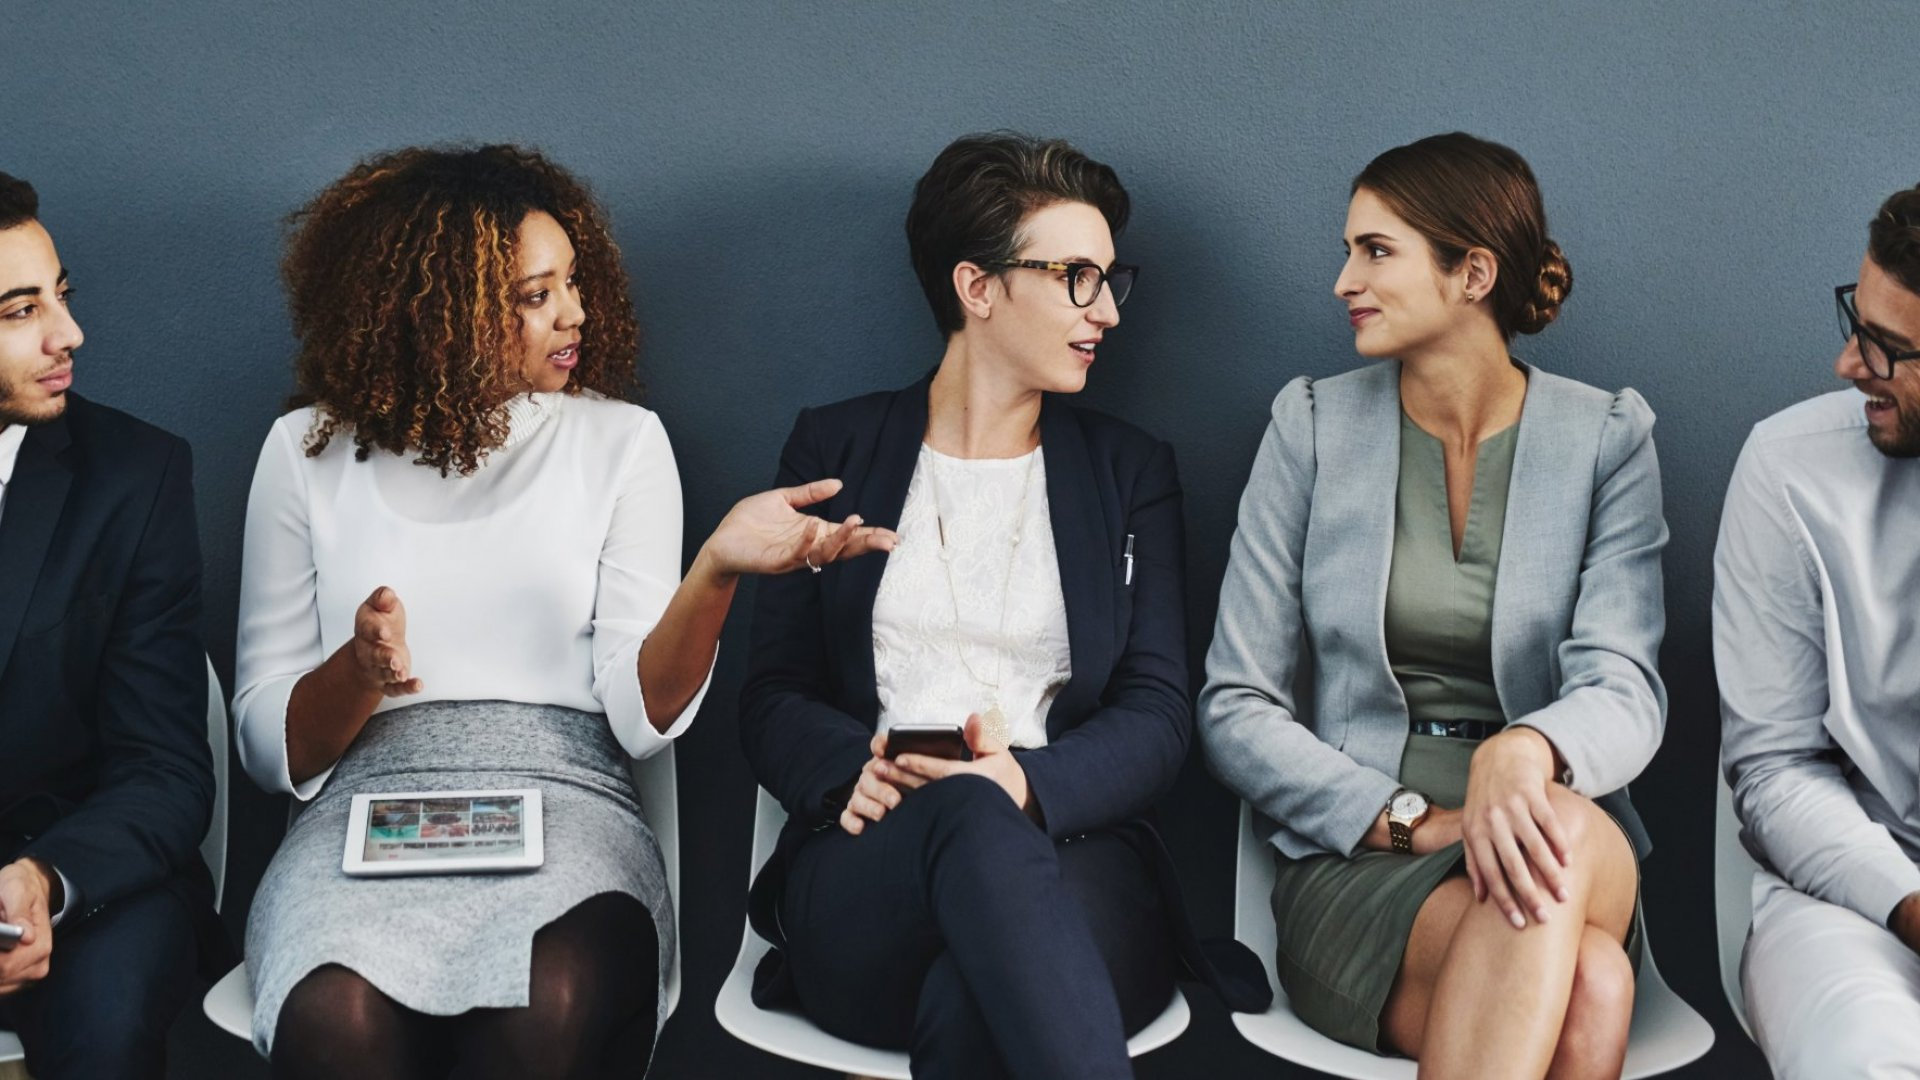 Are You the Newbie? 5 Ways to Quickly Blend Into Your Company Culture